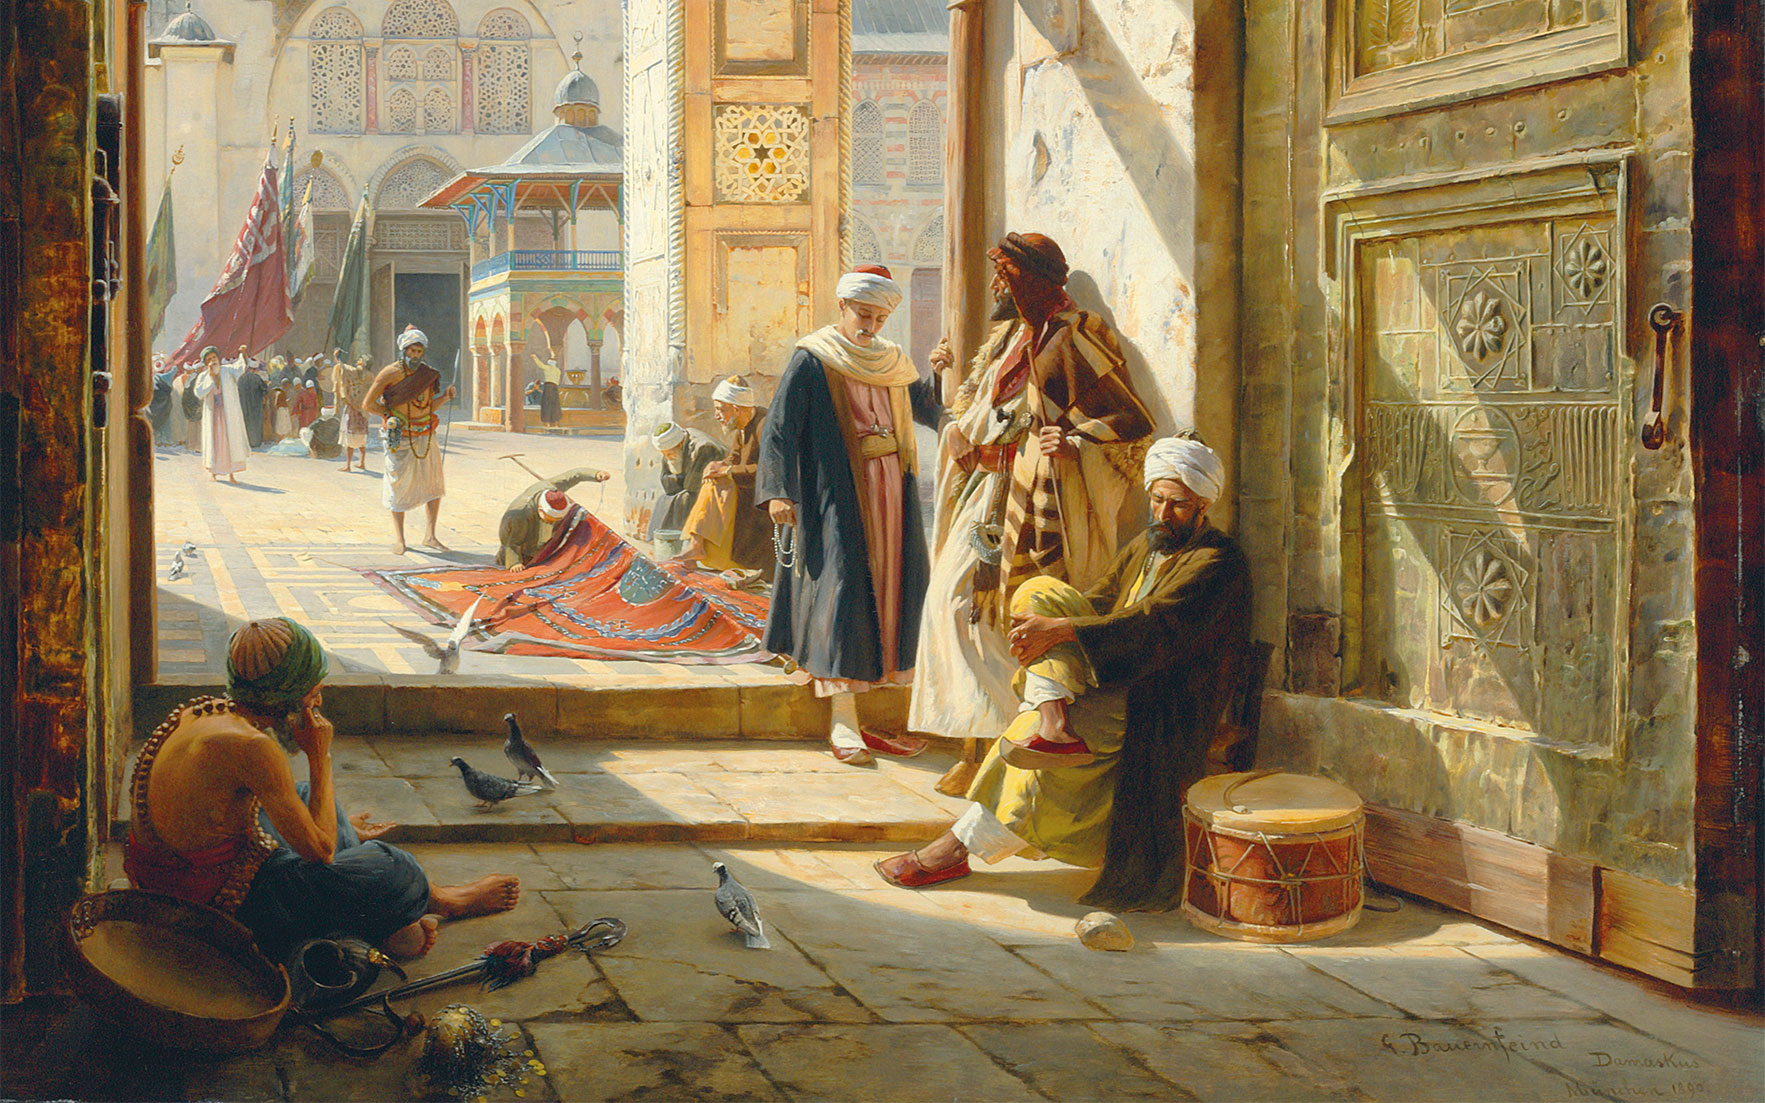 Gustav Bauernfeind (German, 1848-1904), detail from The Gate of the Great Umayyad Mosque, Damascus, 1890. Oil on panel. 47⅝ x 38 in (121 x 96.5 cm). Sold for £2,505,250 on 2 July 2008 at